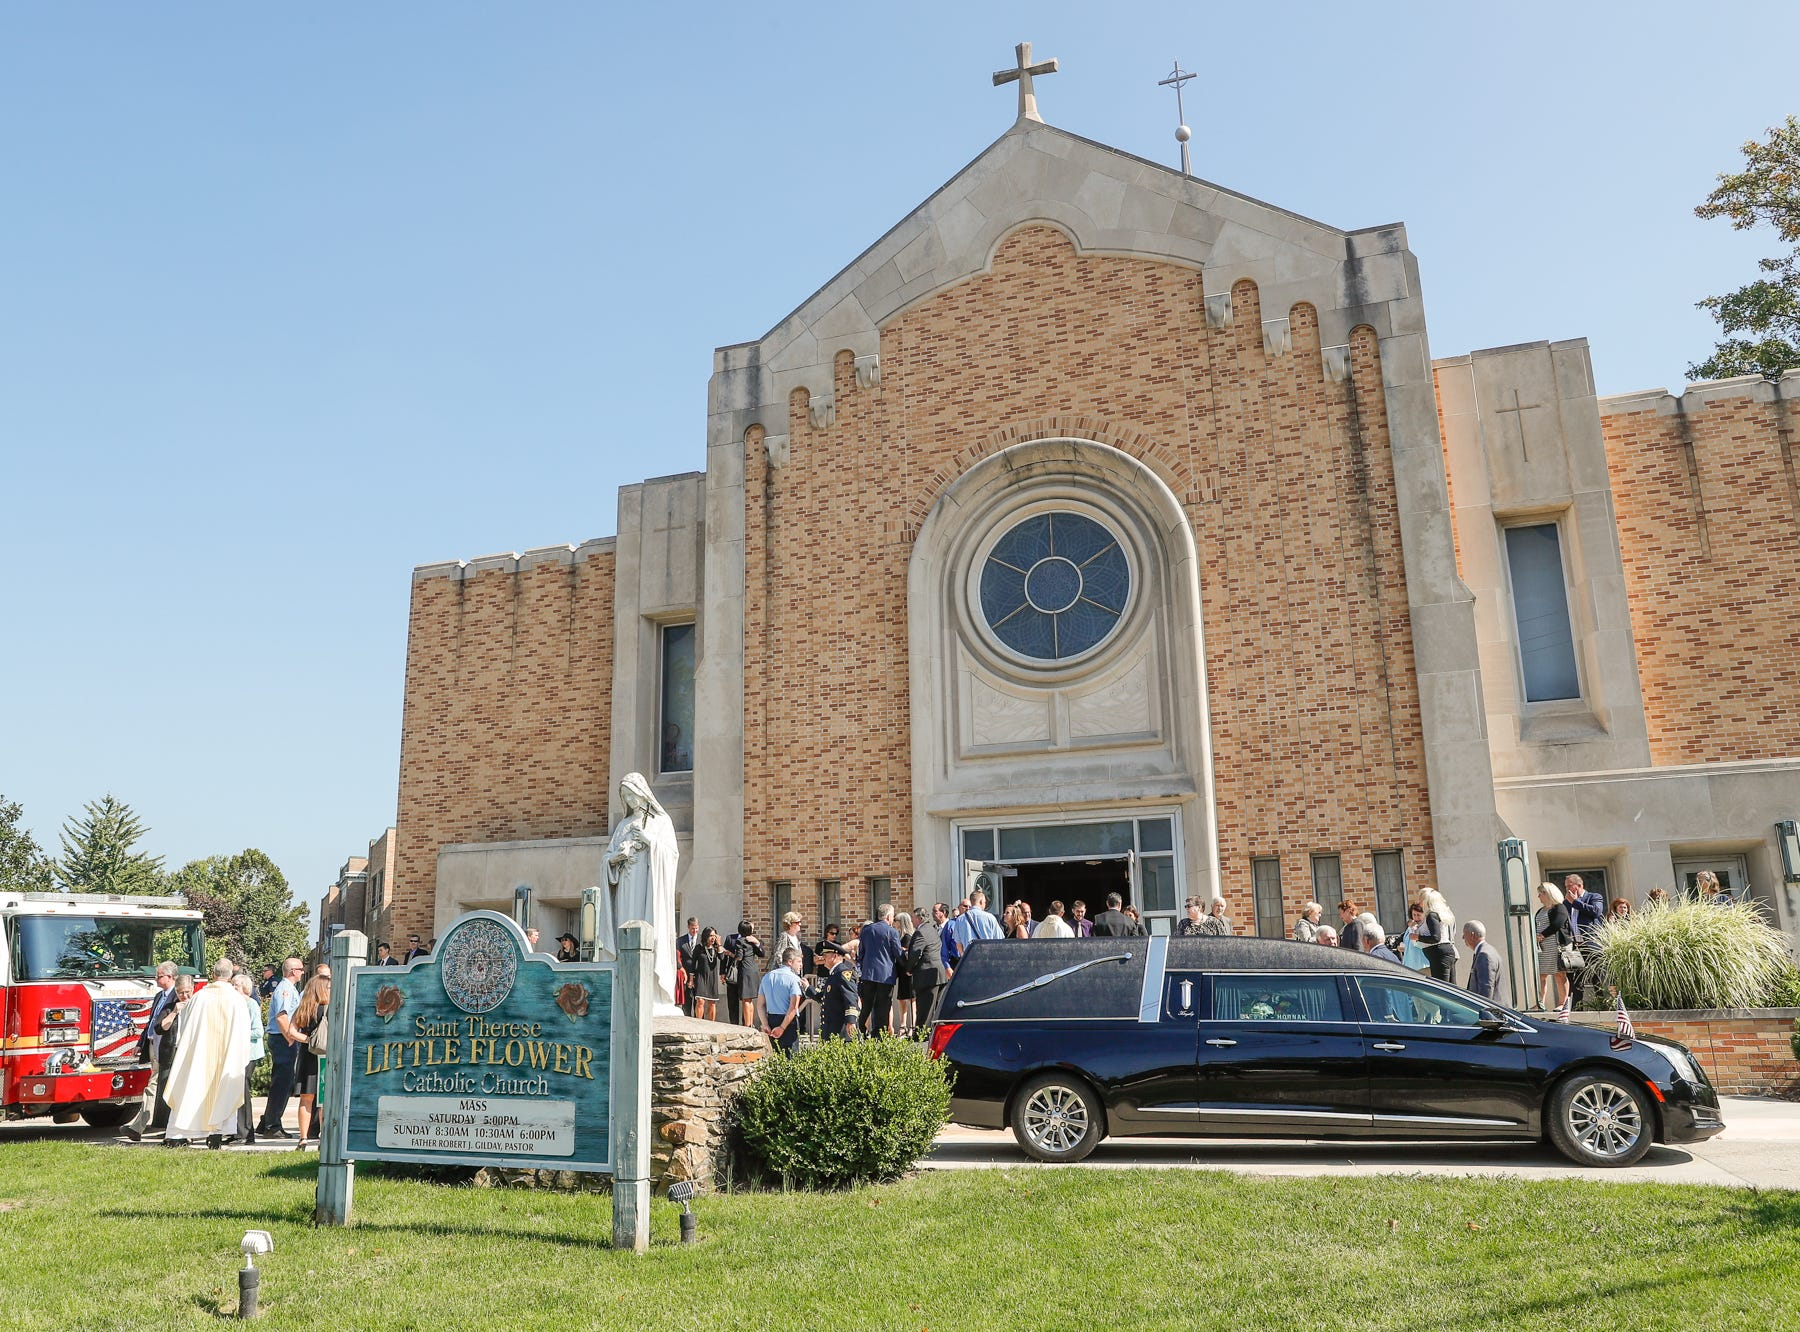 The funeral procession prepares to depart after the Mass of Christian Burial for longtime public servant Mary Moriarty Adams, held at Little Flower Catholic Church in Indianapolis on Saturday, Sept. 15, 2018.